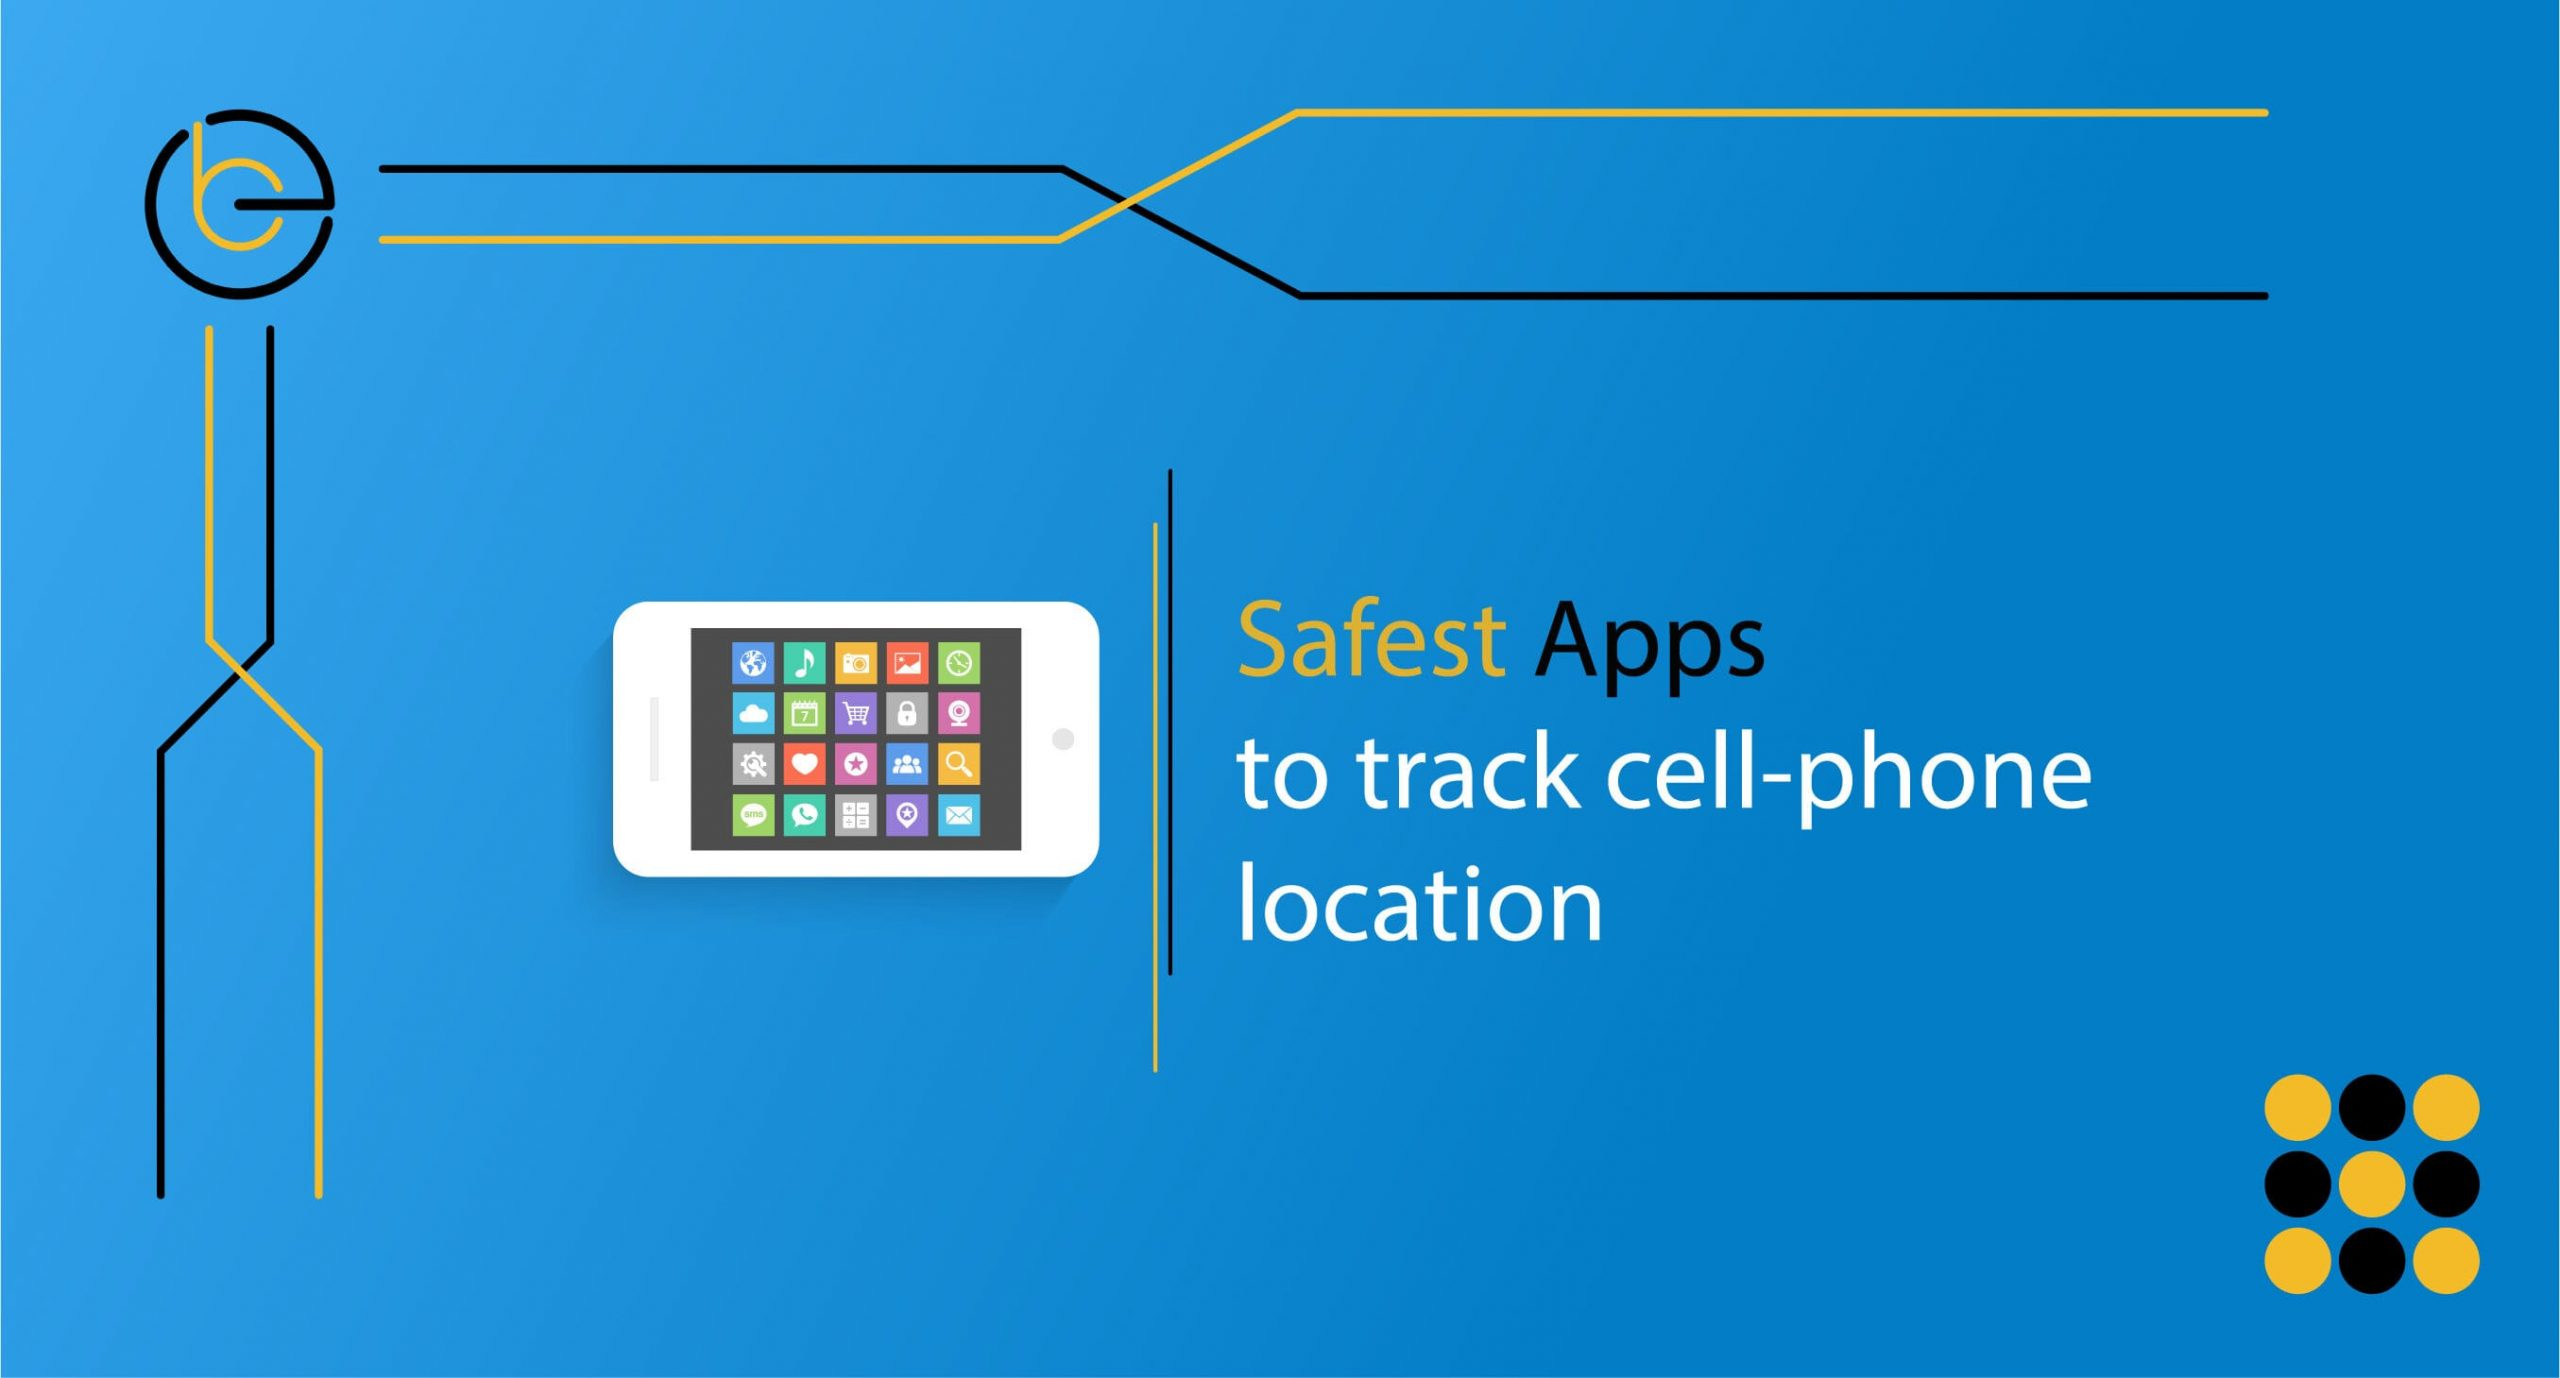 Safest apps to track cell phone location